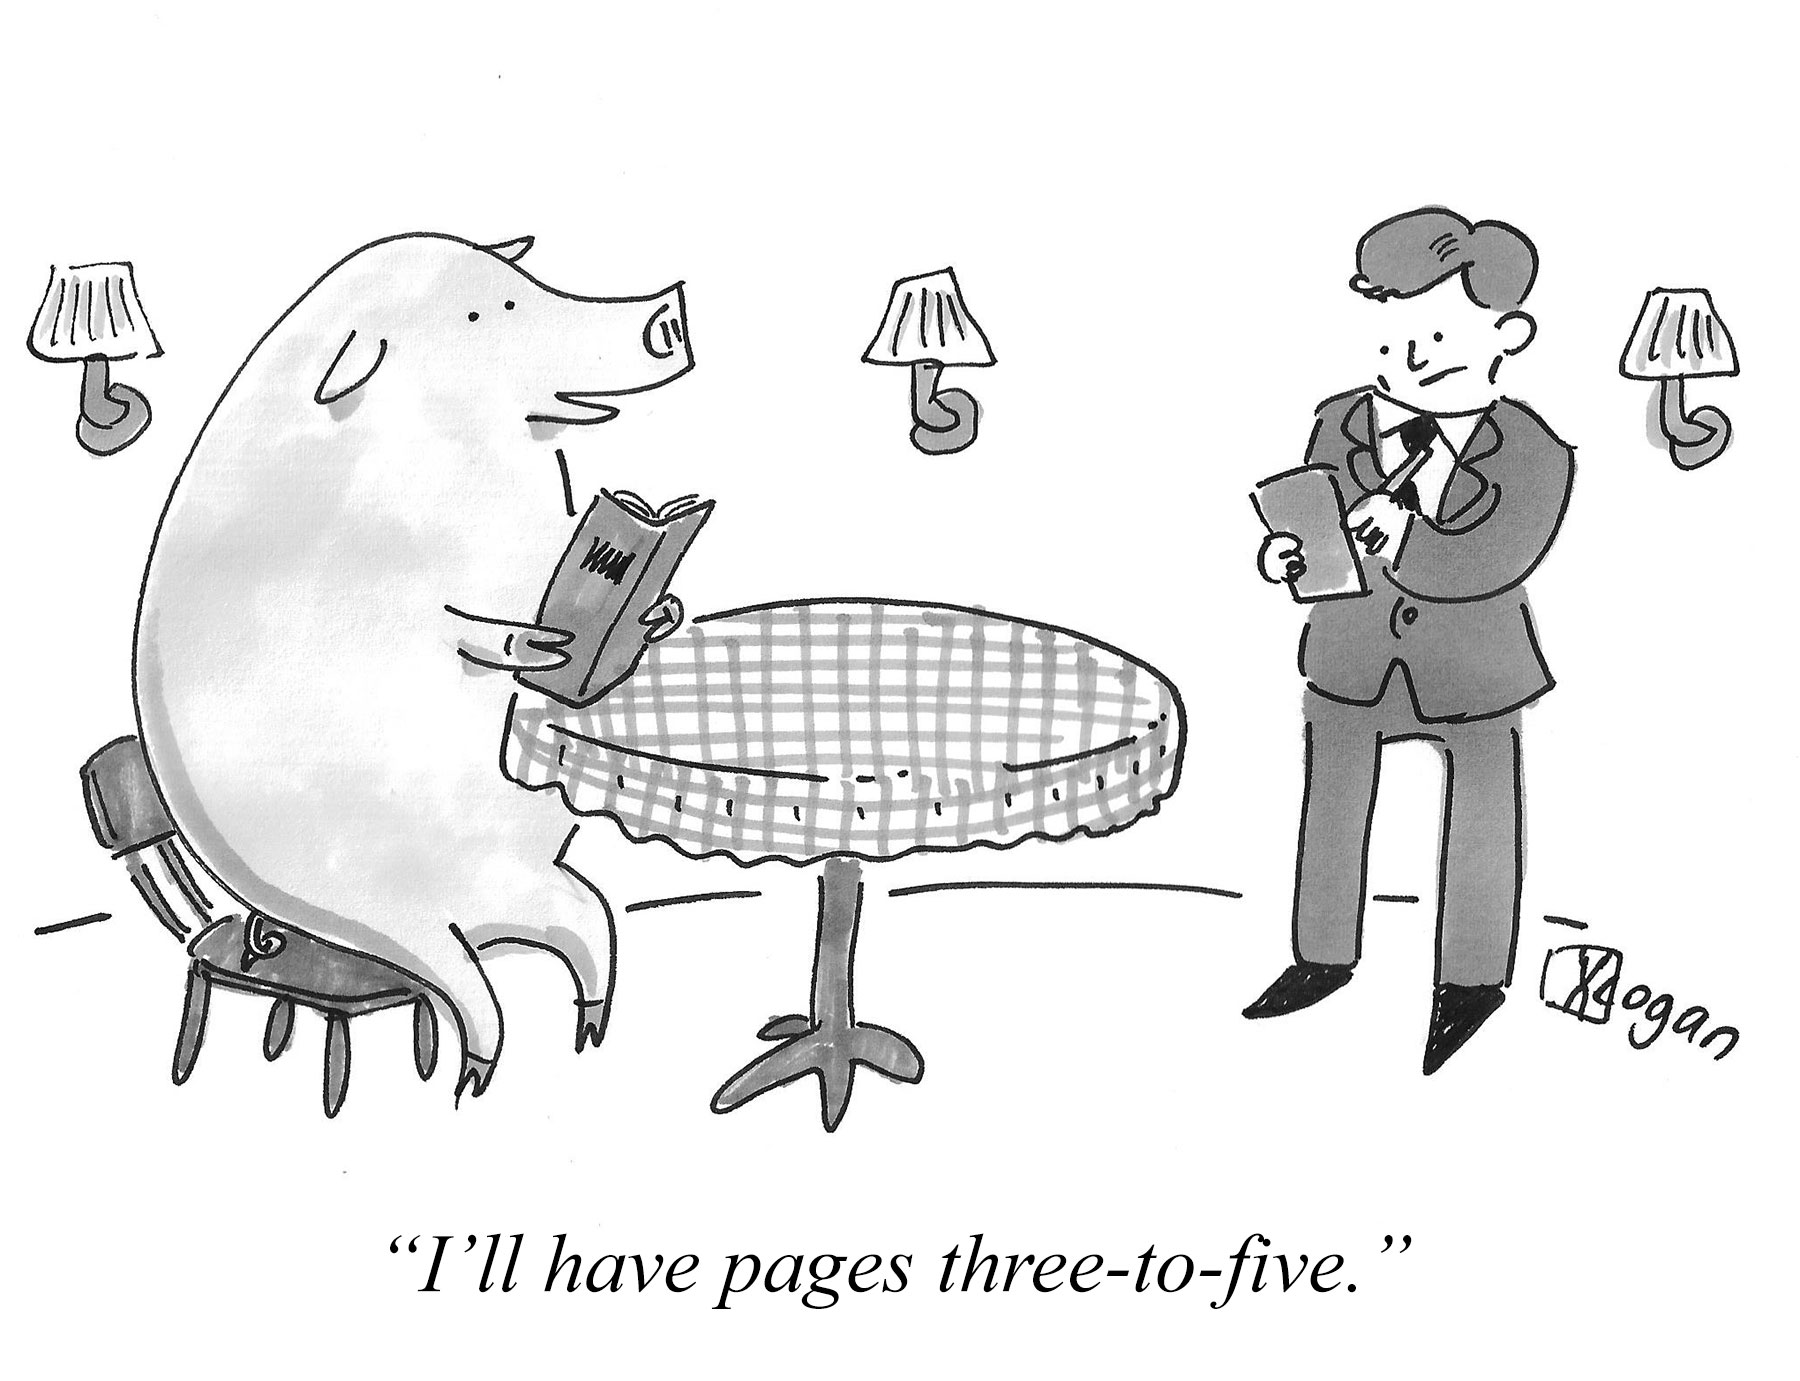 I'll have pages three-to-five.